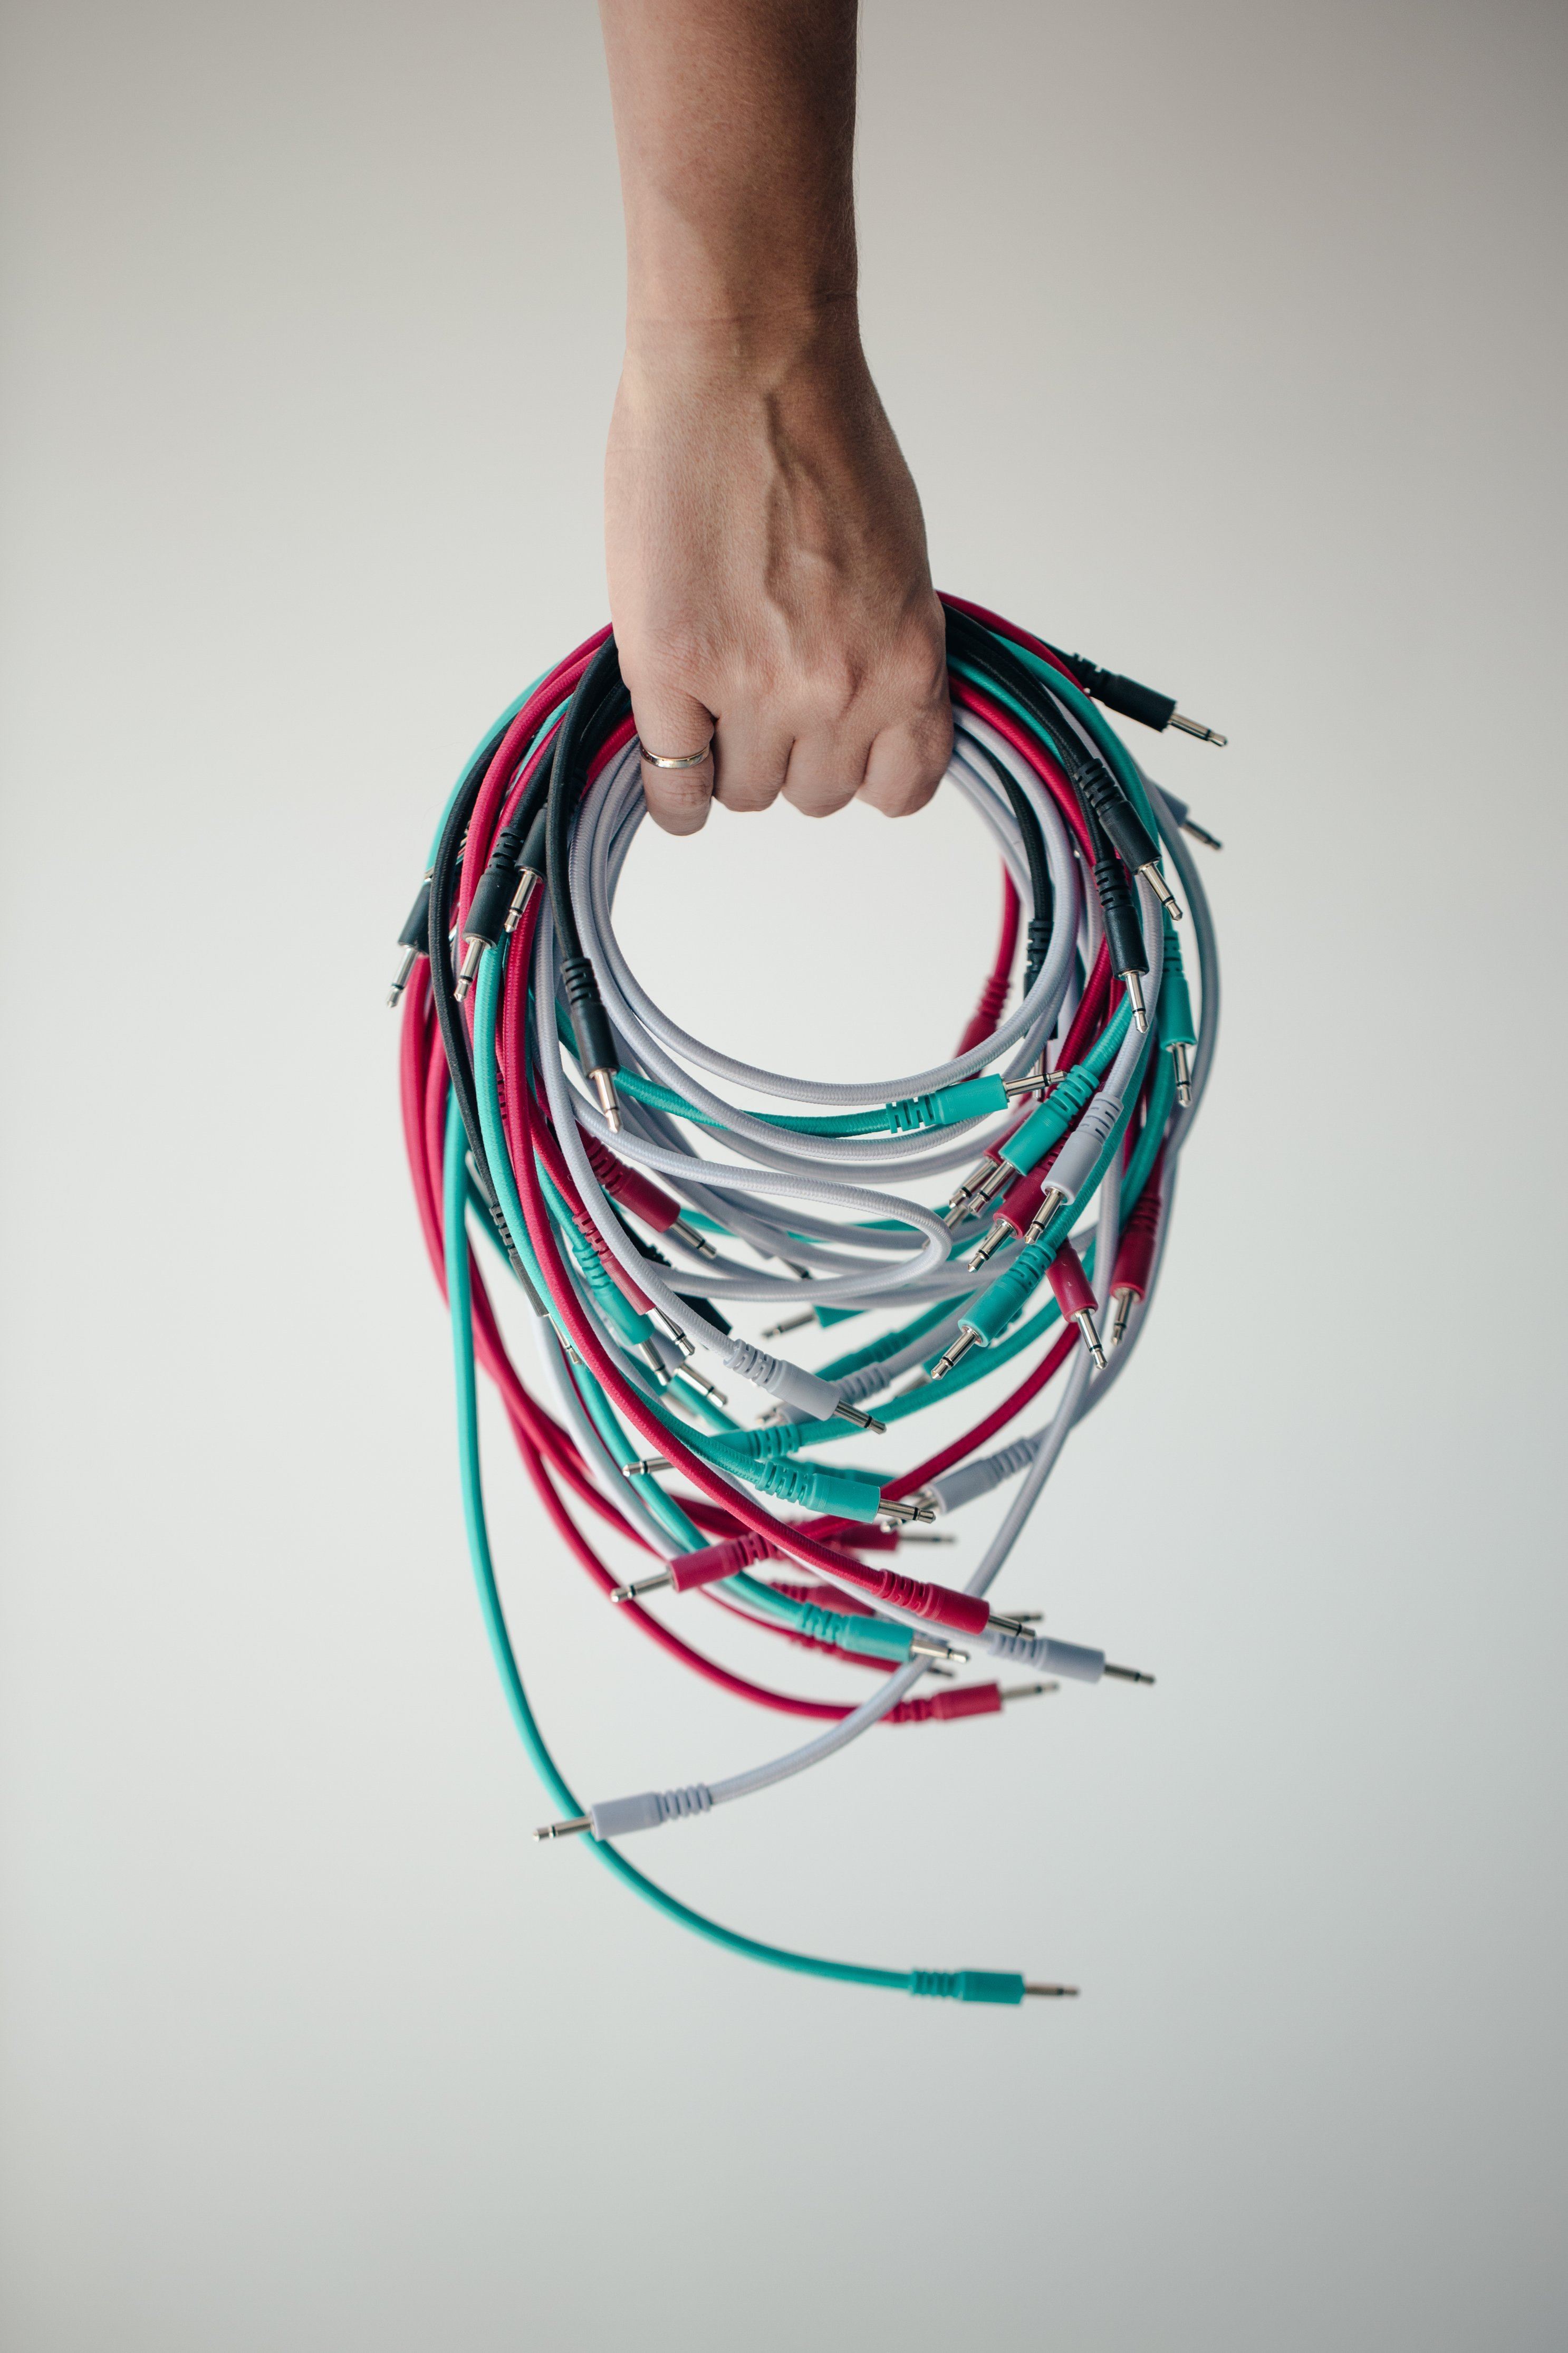 hand-full-of-wires